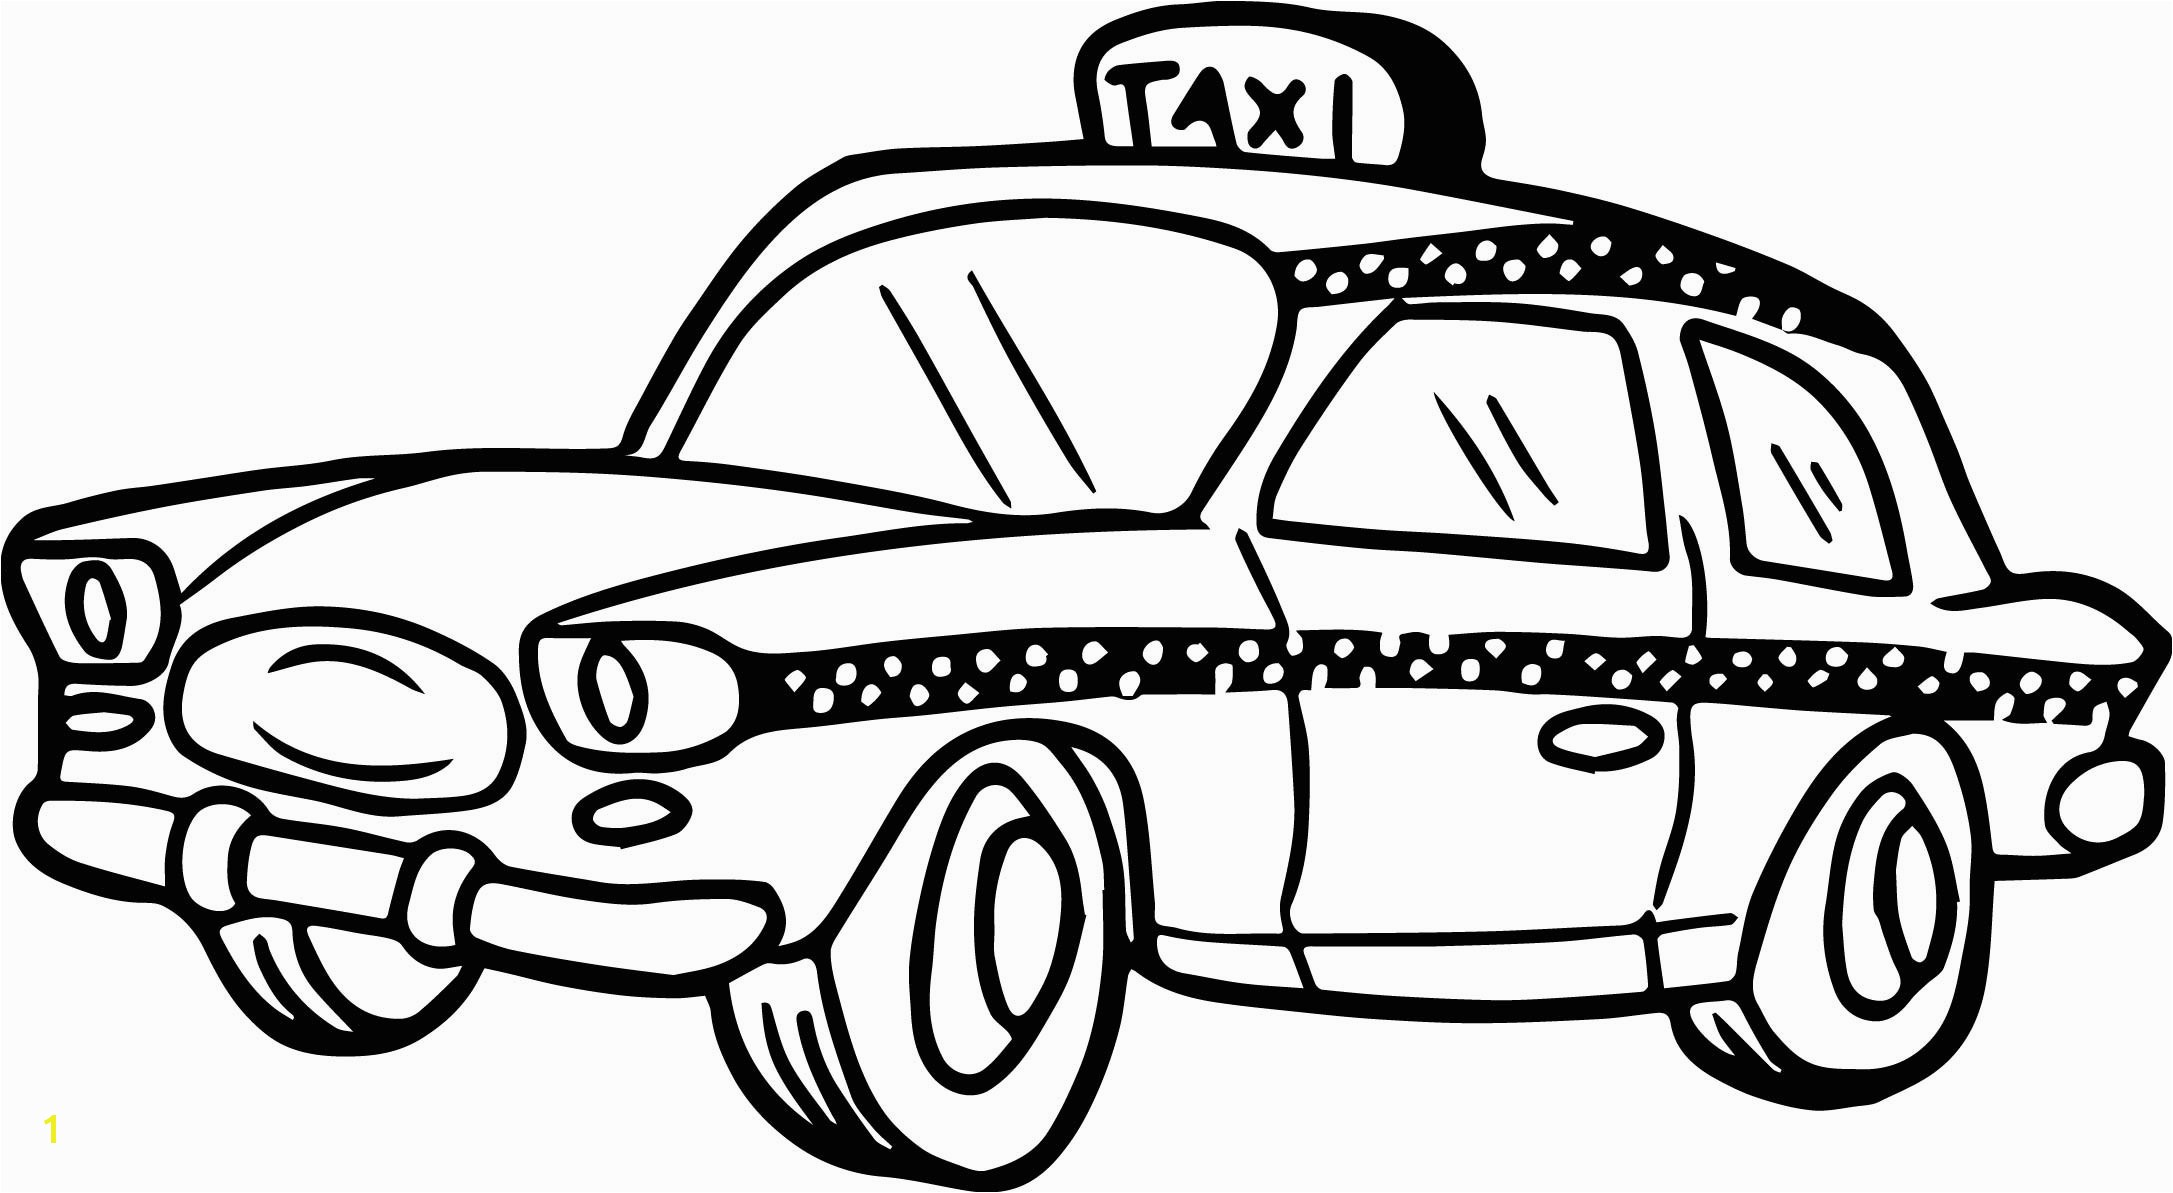 Taxi Driver Car Cartoon Coloring Page Transportation Pages For Kids Awesome Cute